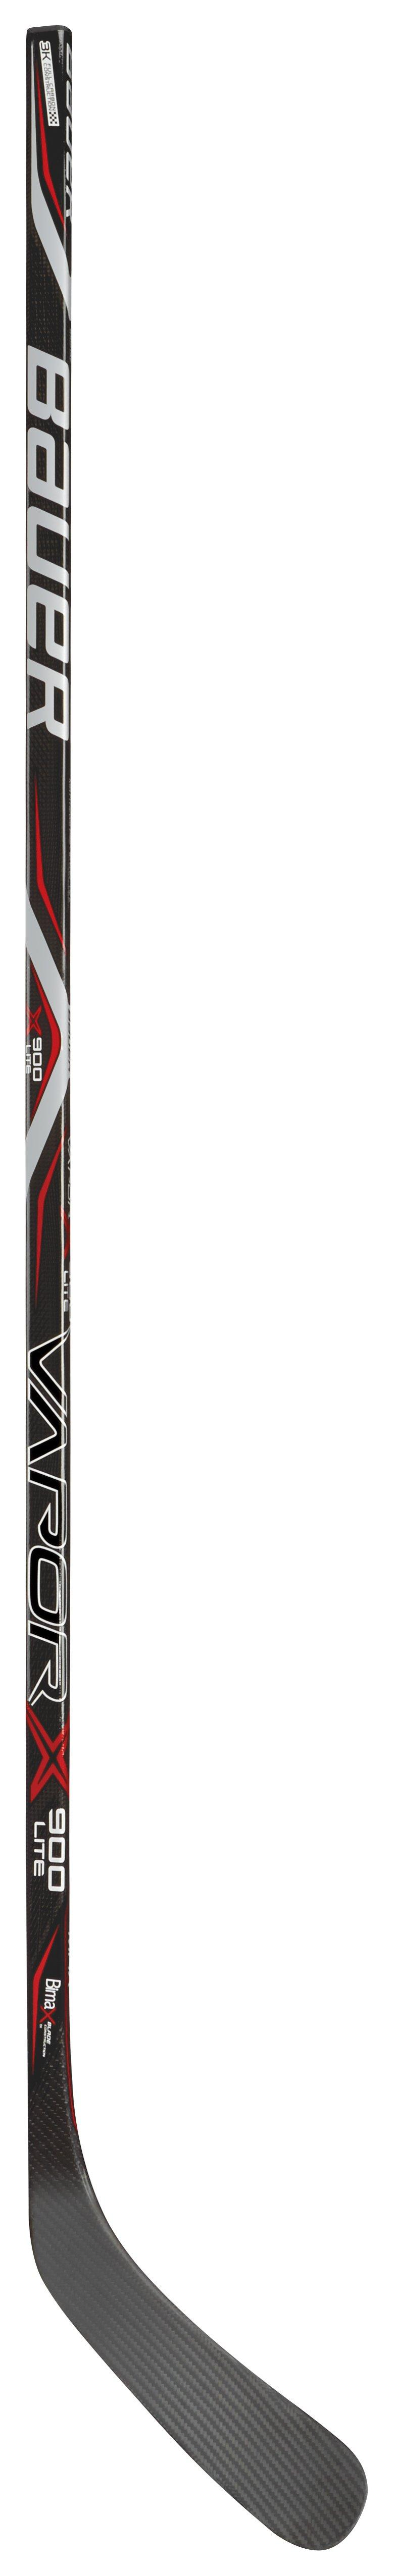 VAPOR X900 LITE GRIPTAC Stick Junior